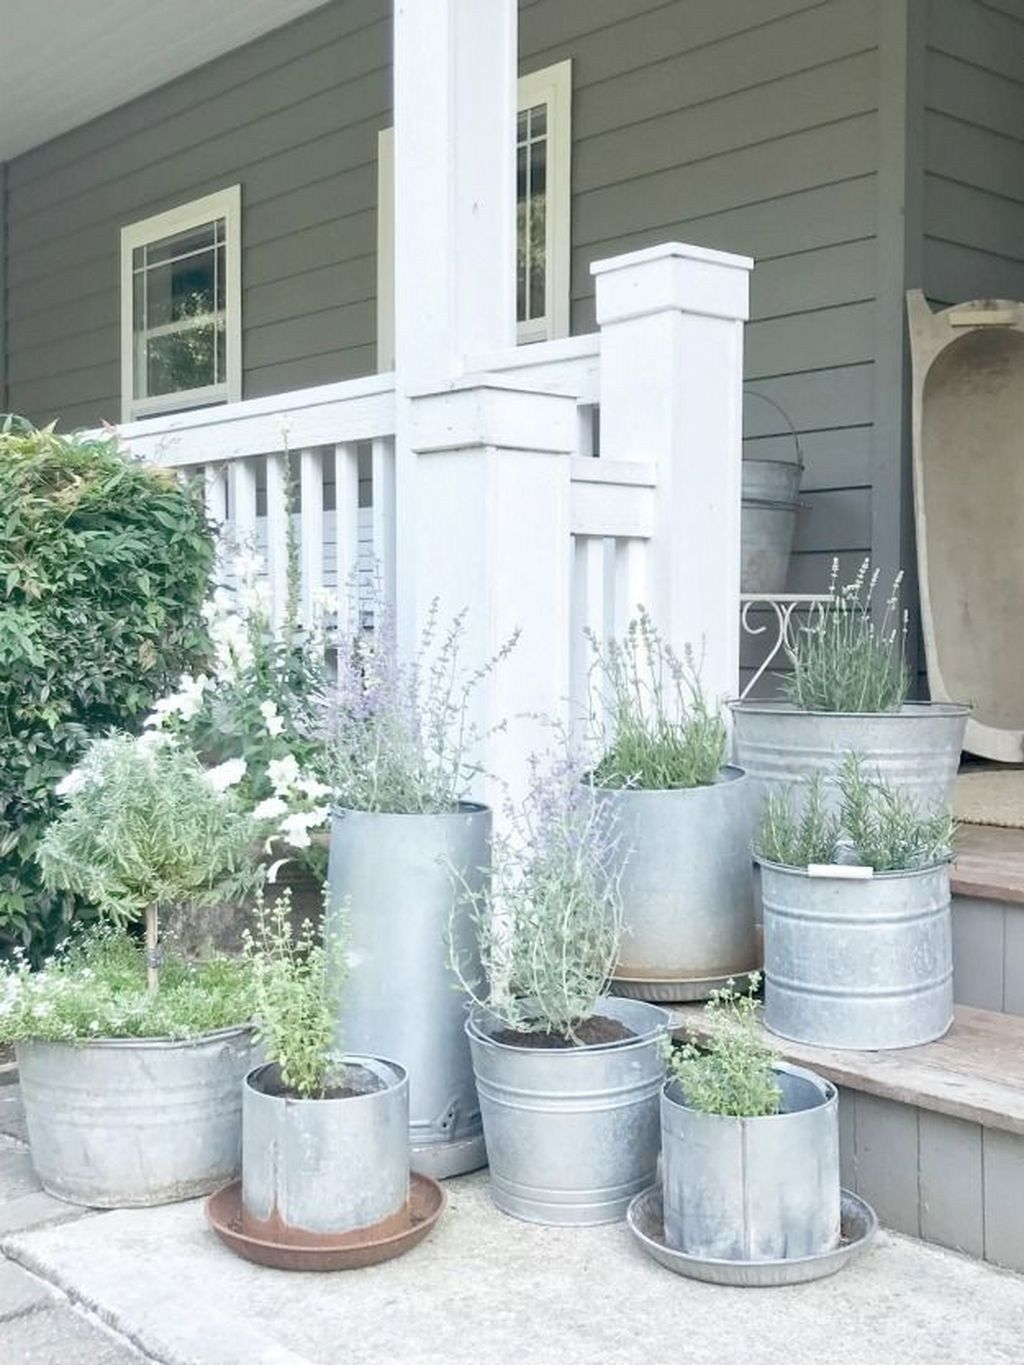 Eclectic Galvanized Metal Planters Country Cottage Decor Galvanized Planters Metal Planters